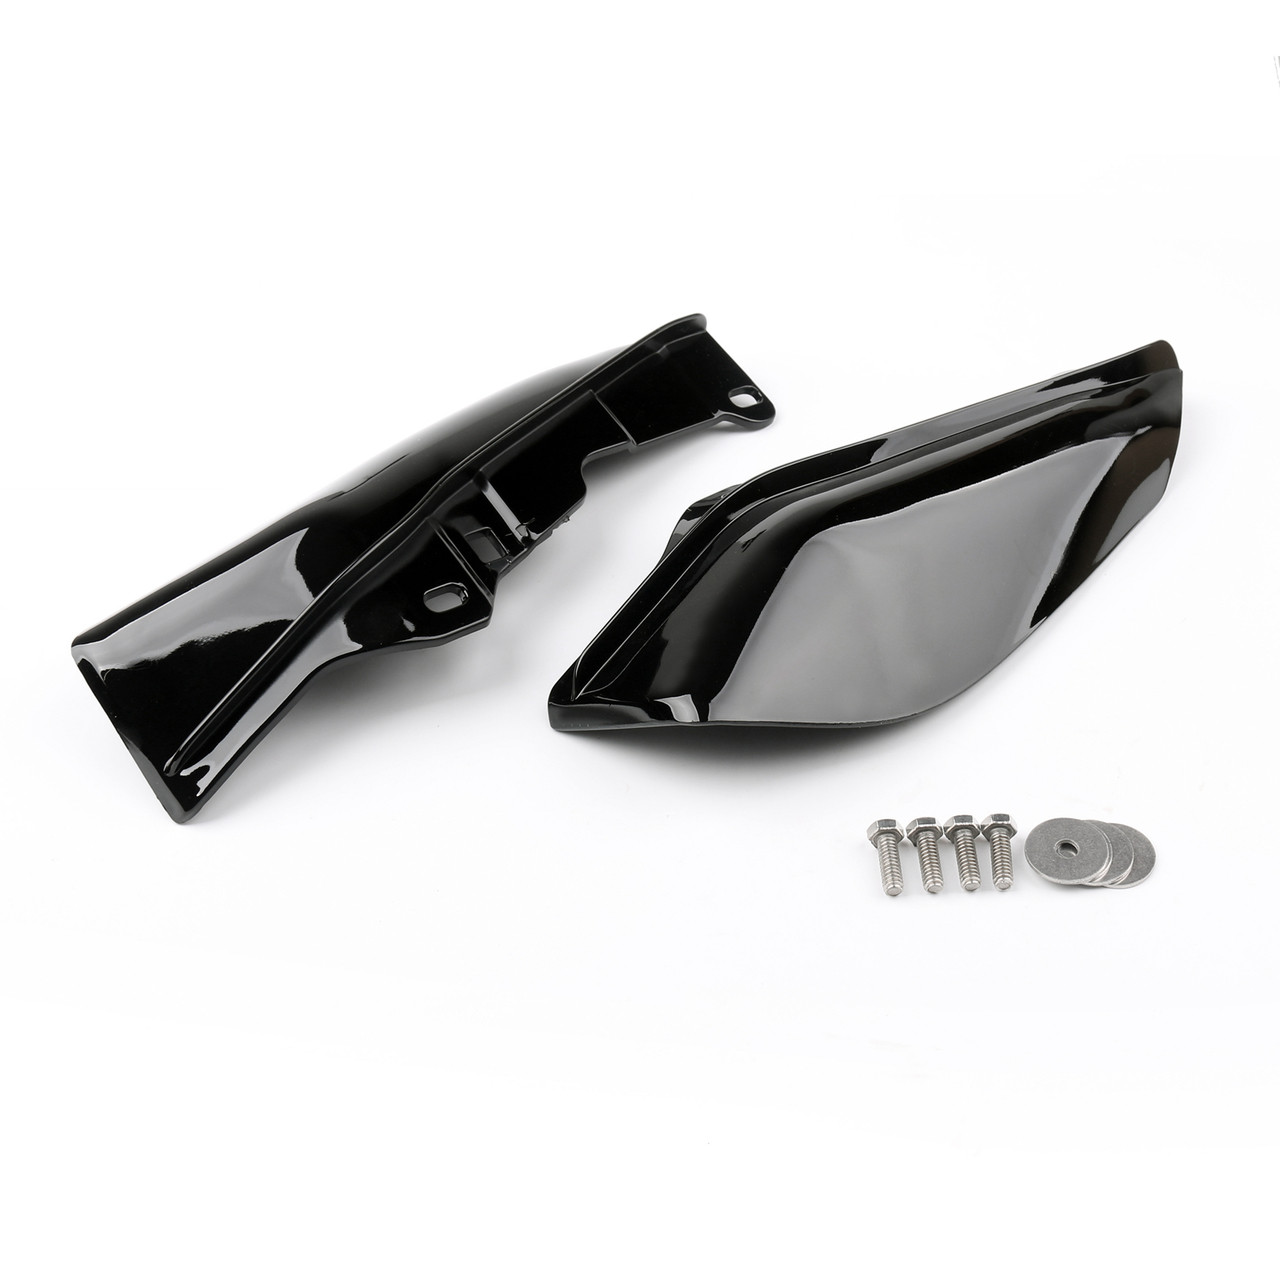 Mid-Frame Air Heat Deflector Trim Accents Shield For Harley Touring Electra Glide 09-13 Black